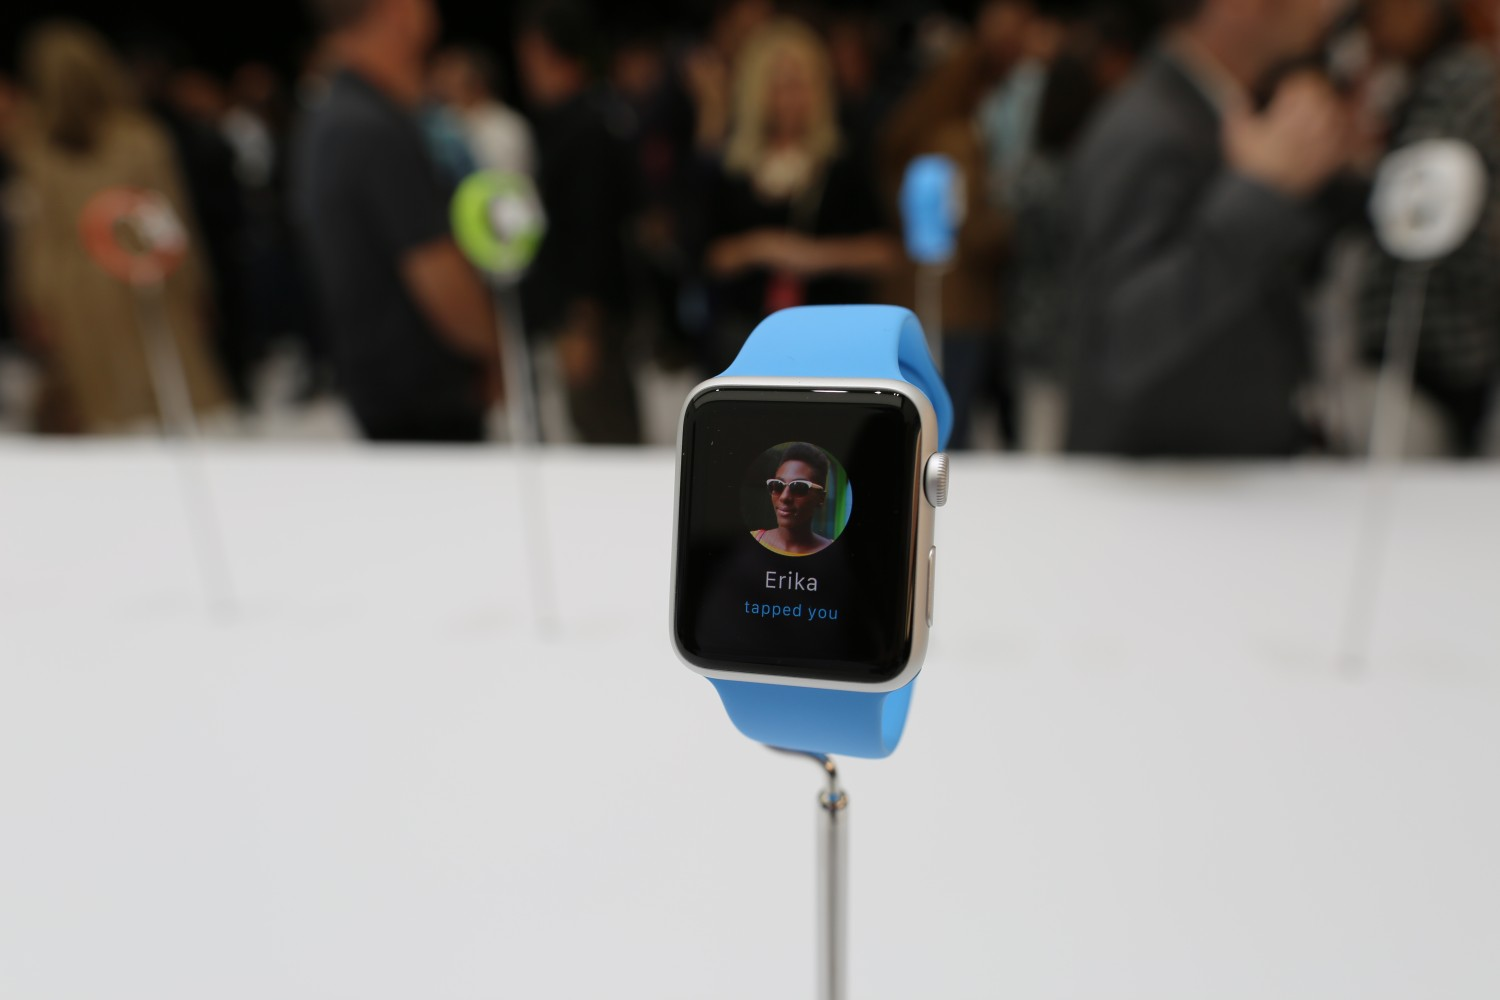 Tim Cook says the upcoming Apple Watch will replace your car keys